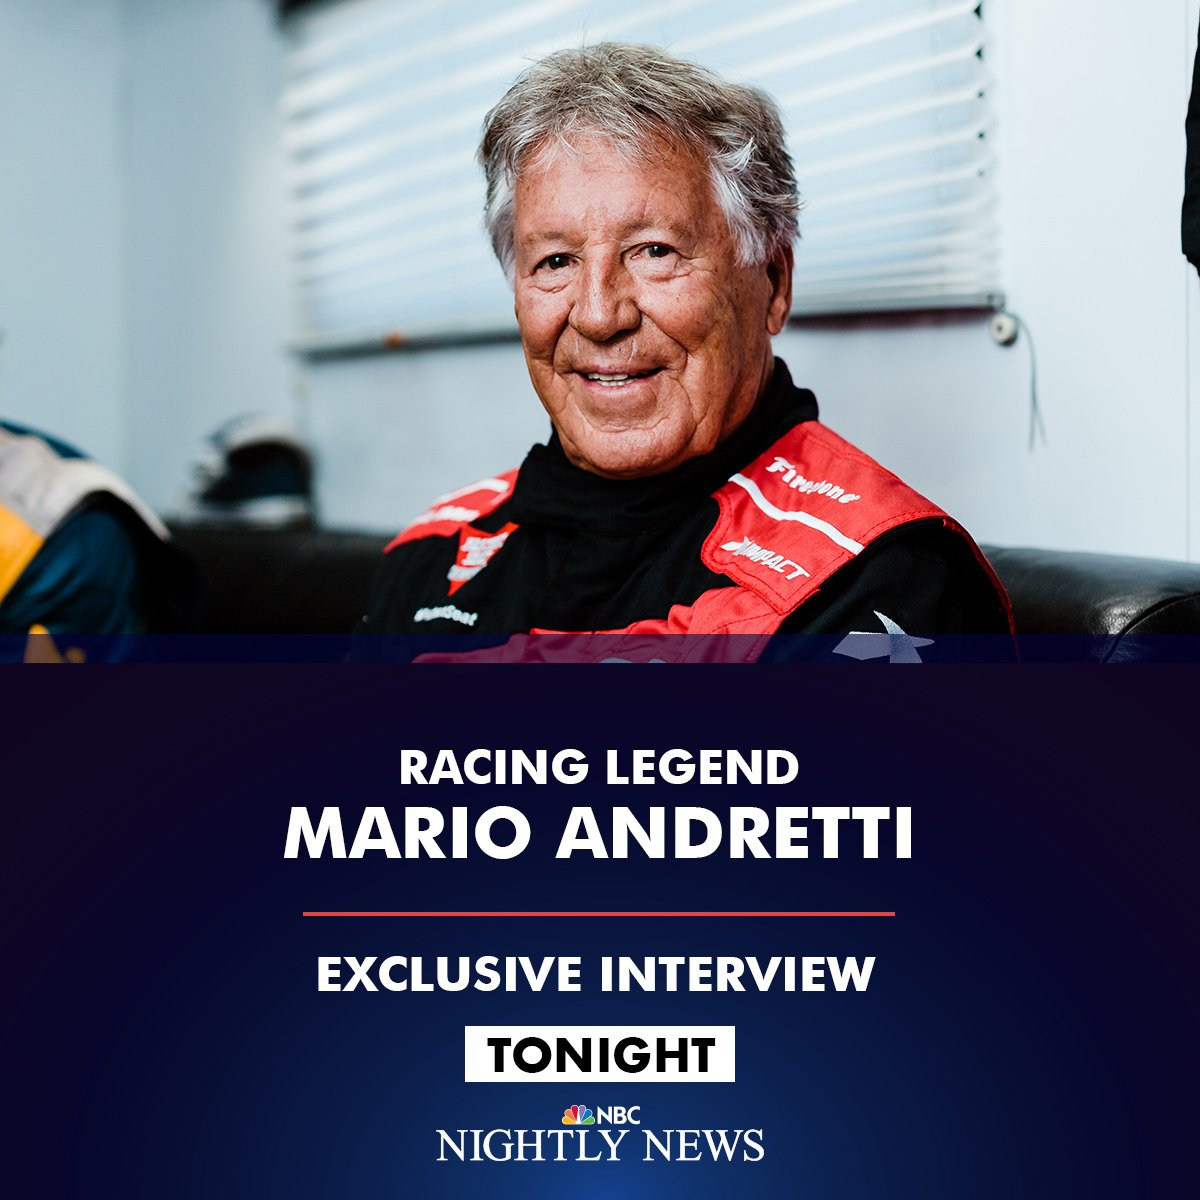 Coming up on @NBCNightlyNews:  @AnneNBCNews goes for a drive with @MarioAndretti as the racing legend looks back on his 1969 #Indy500 win.  Watch tonight on @NBCNightlyNews at 6:30 ET / 5:30 CT on NBC (check your local listings).